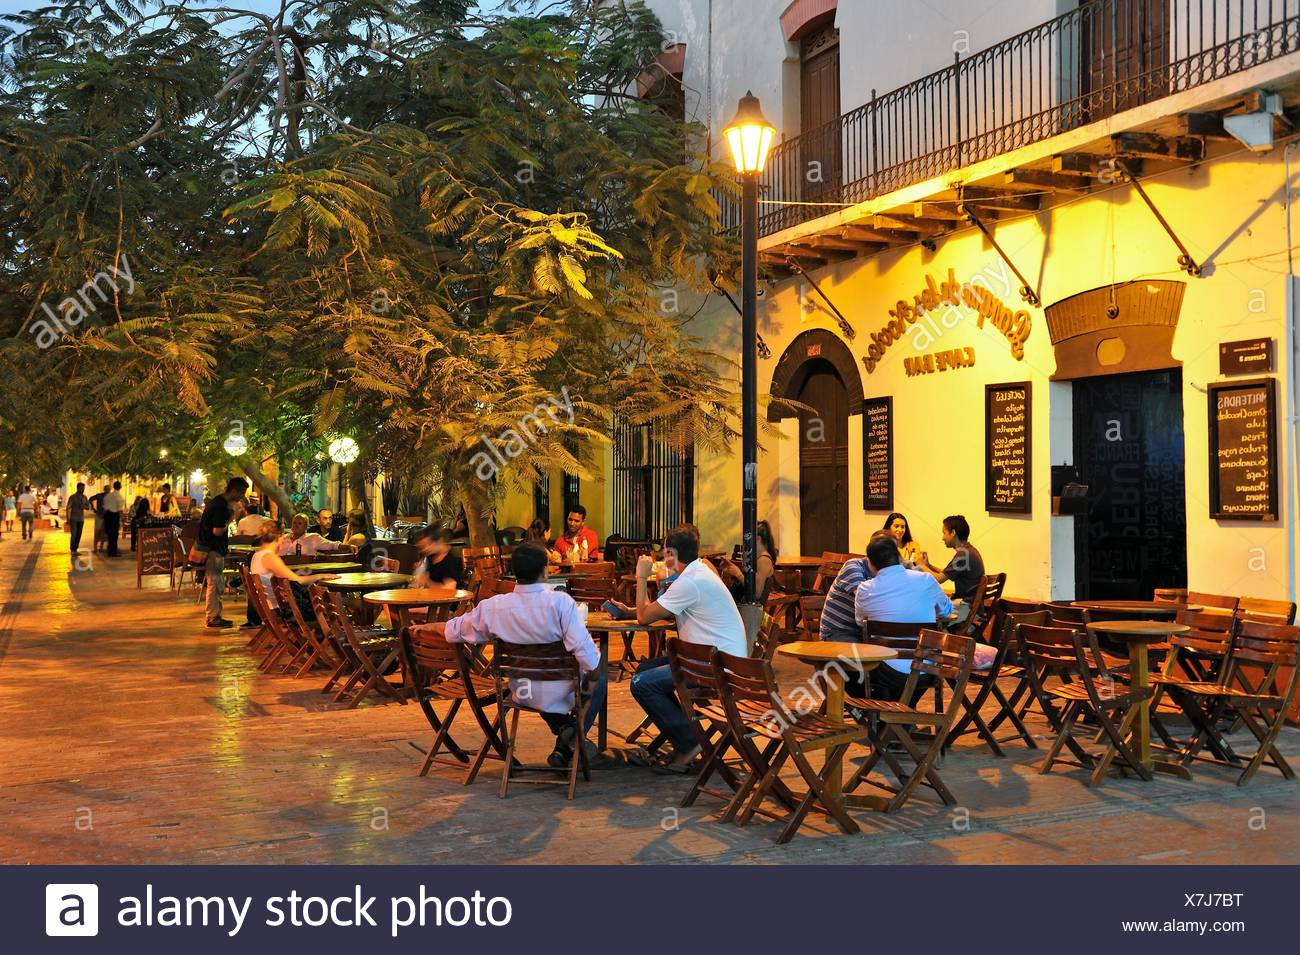 sidewalk cafe on the ´´Parque de los Novios´´ (courting couple´s square), Santa Marta, department of Magdalena, Caribbean Region, Colombia, South - Stock Image